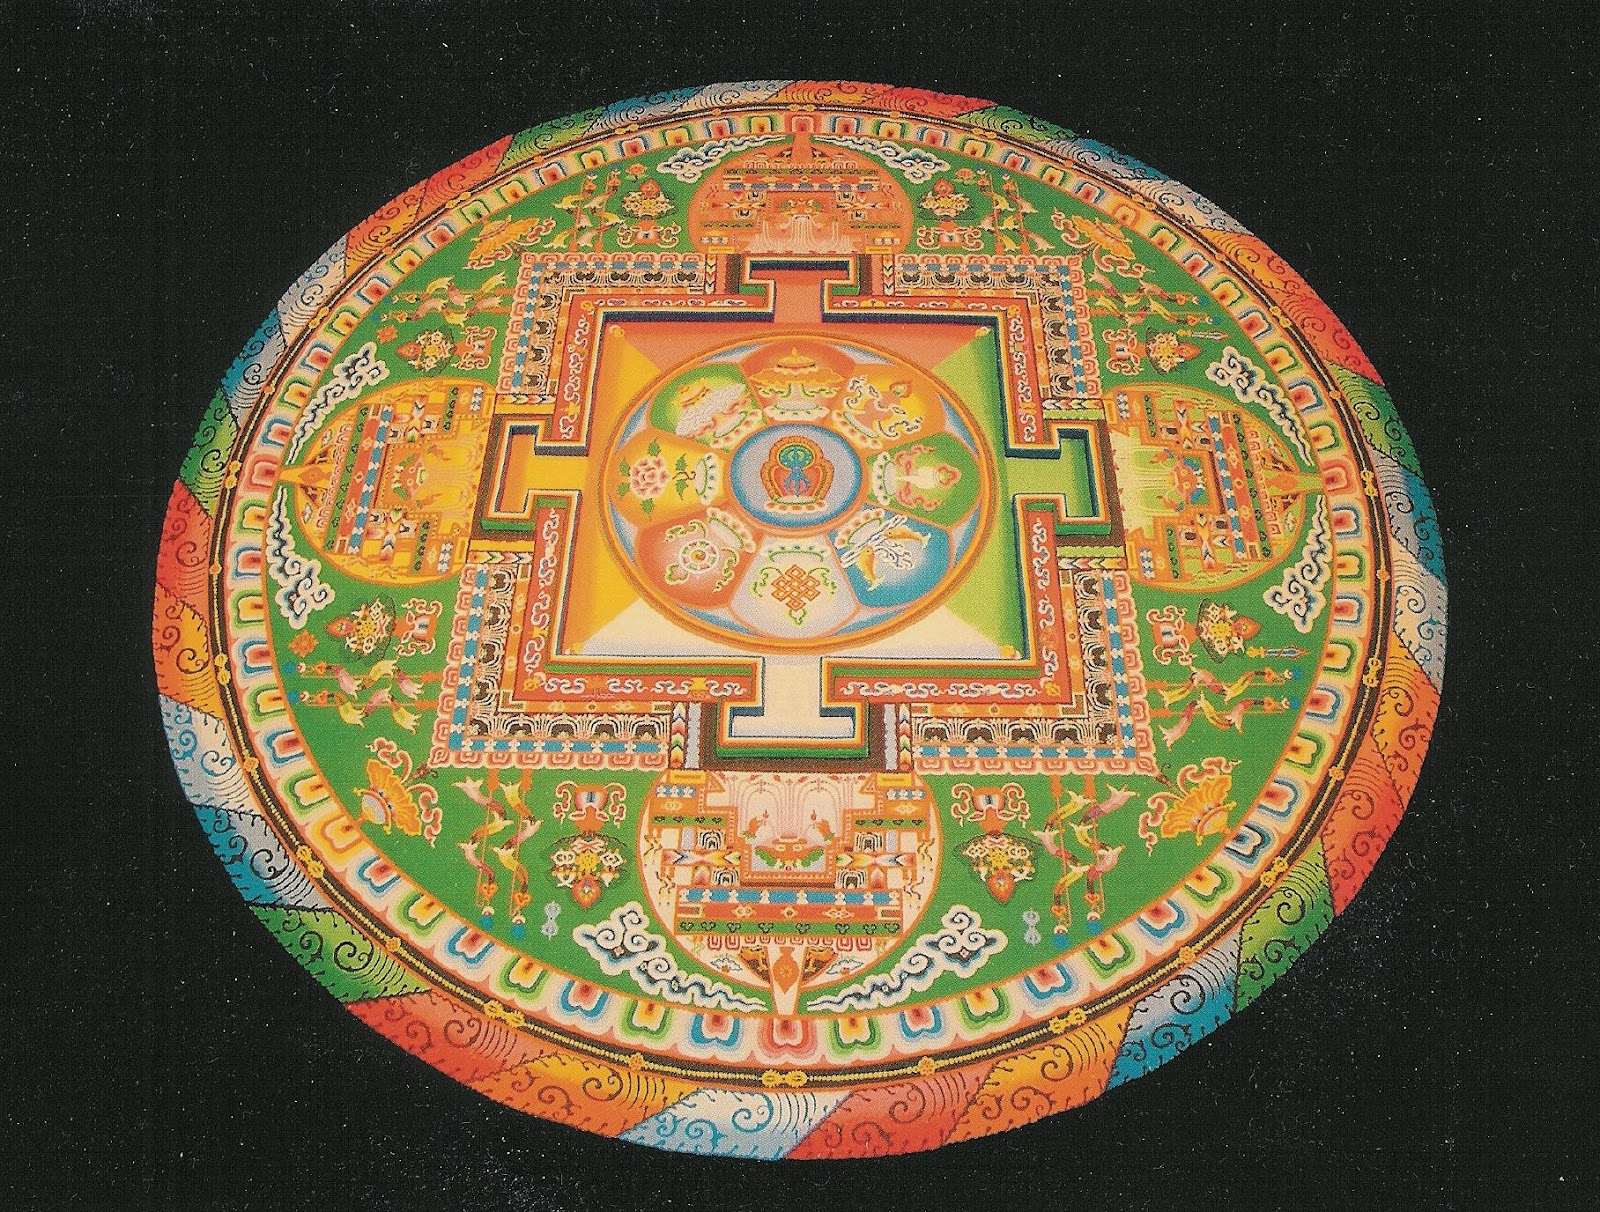 Life of lopsided 8 grand healing puja 2012 by the great - Grand mandala ...